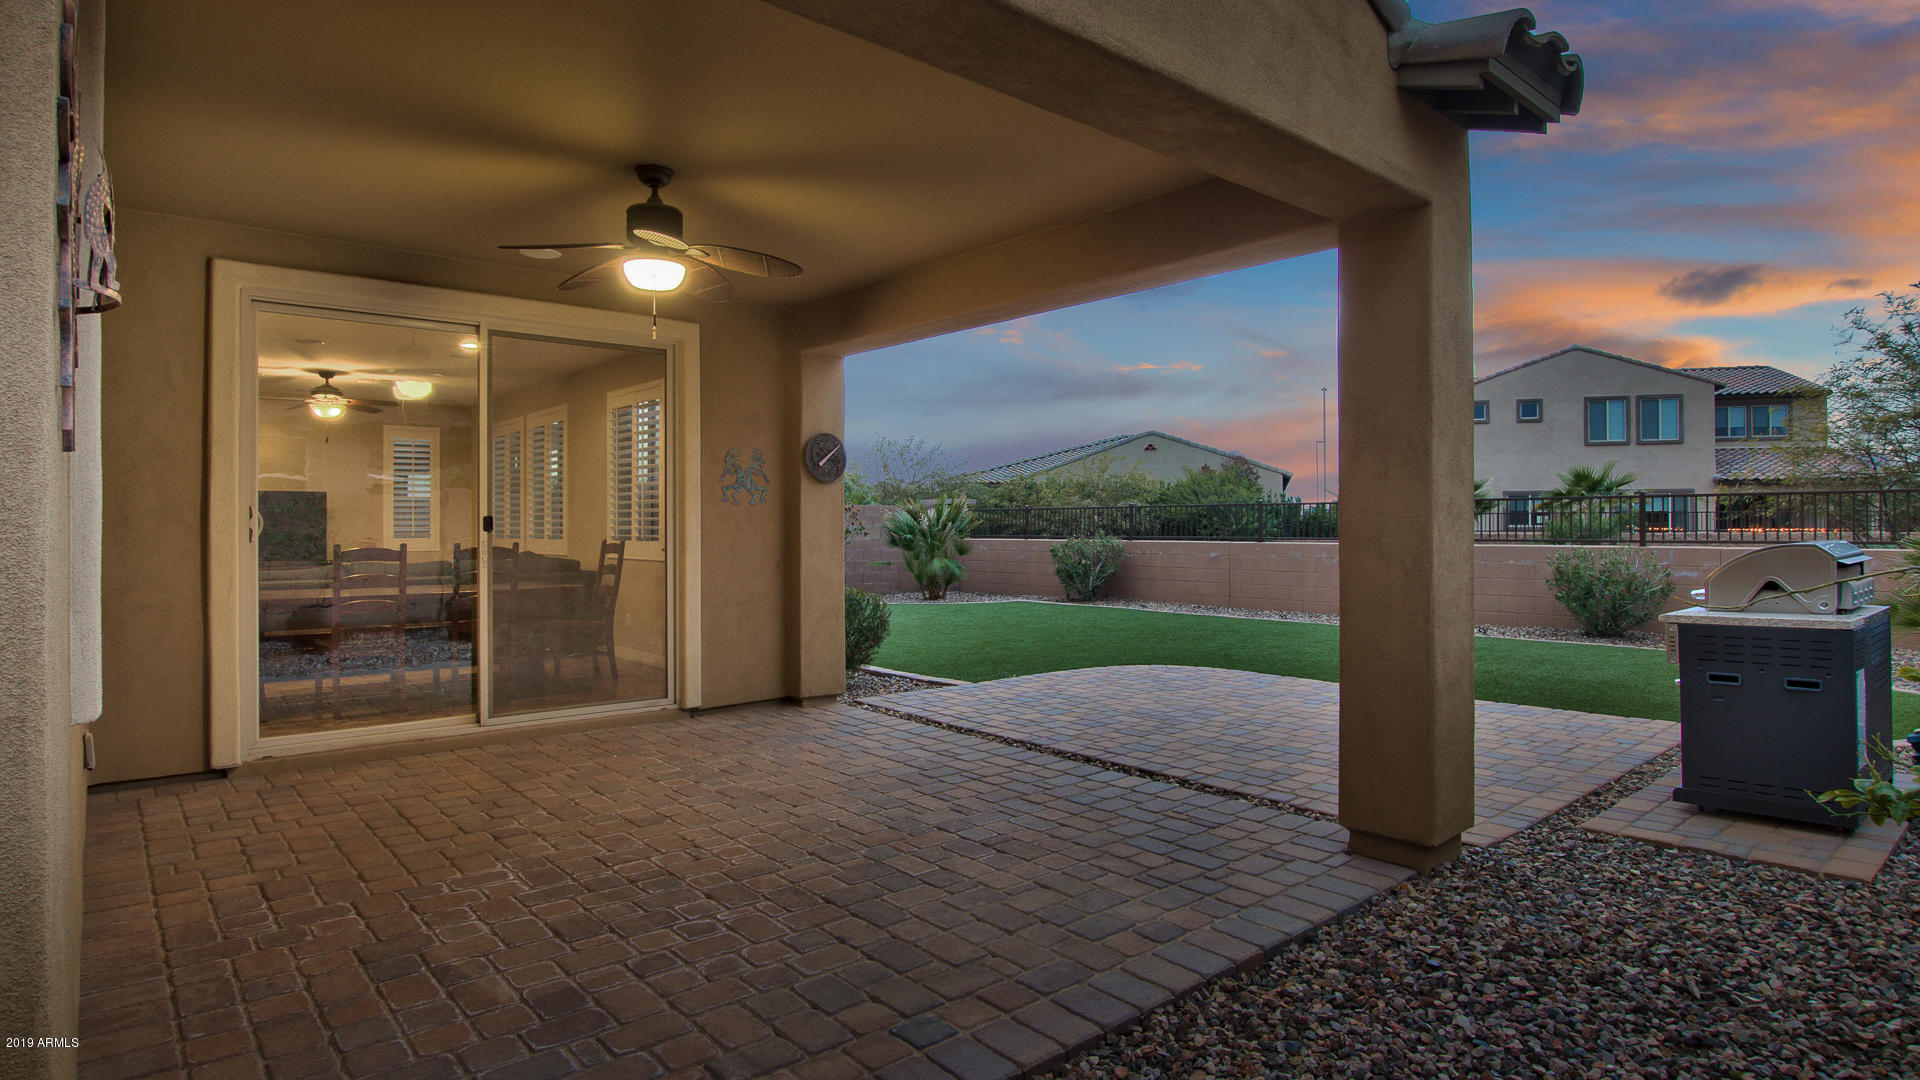 MLS 5869026 3392 E PLUM Street, Gilbert, AZ Gilbert AZ Marbella Vineyards